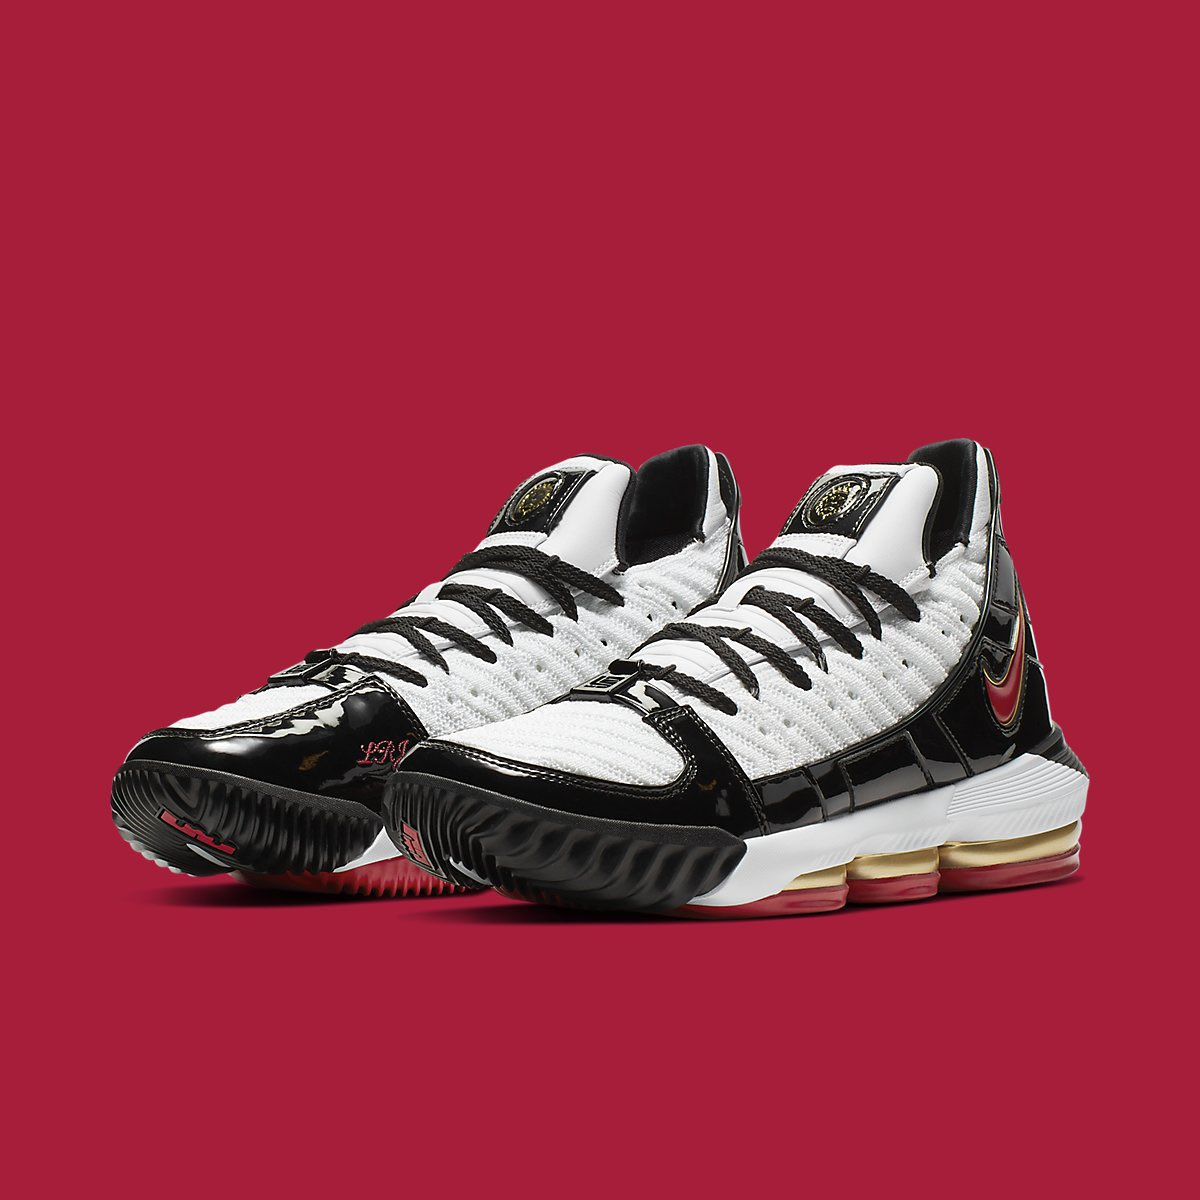 sneakers for cheap 246ed 5da3a lebronwatch hashtag on Twitter